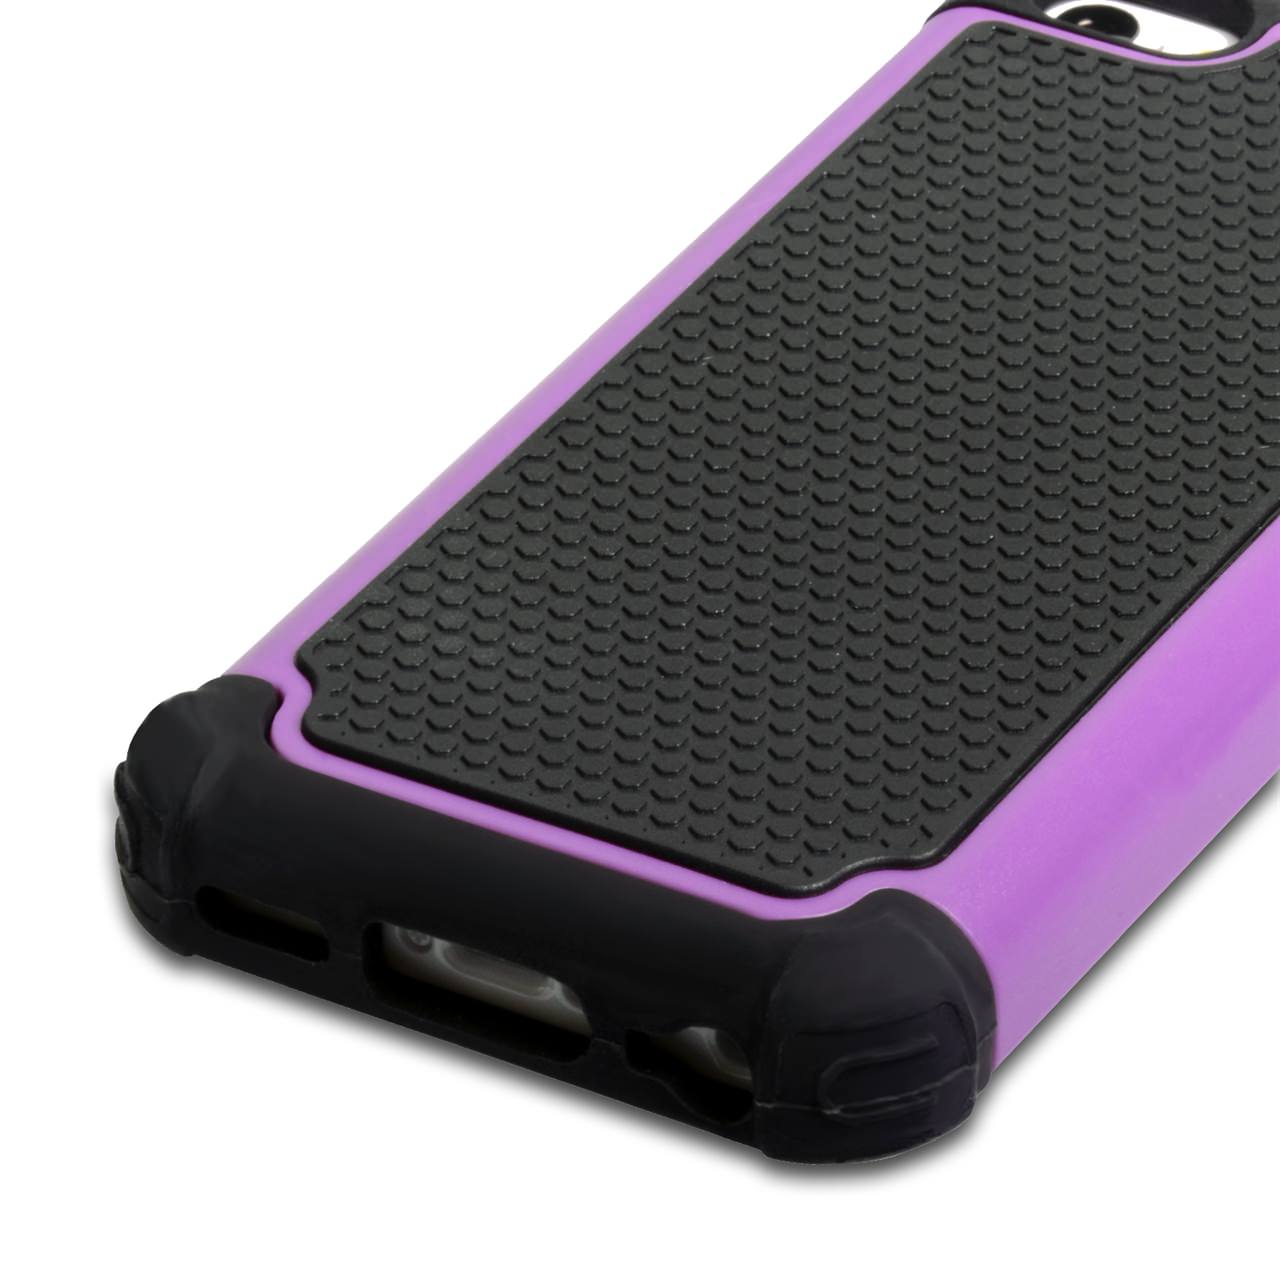 YouSave Accessories iPhone 5C Grip Combo Case - Purple